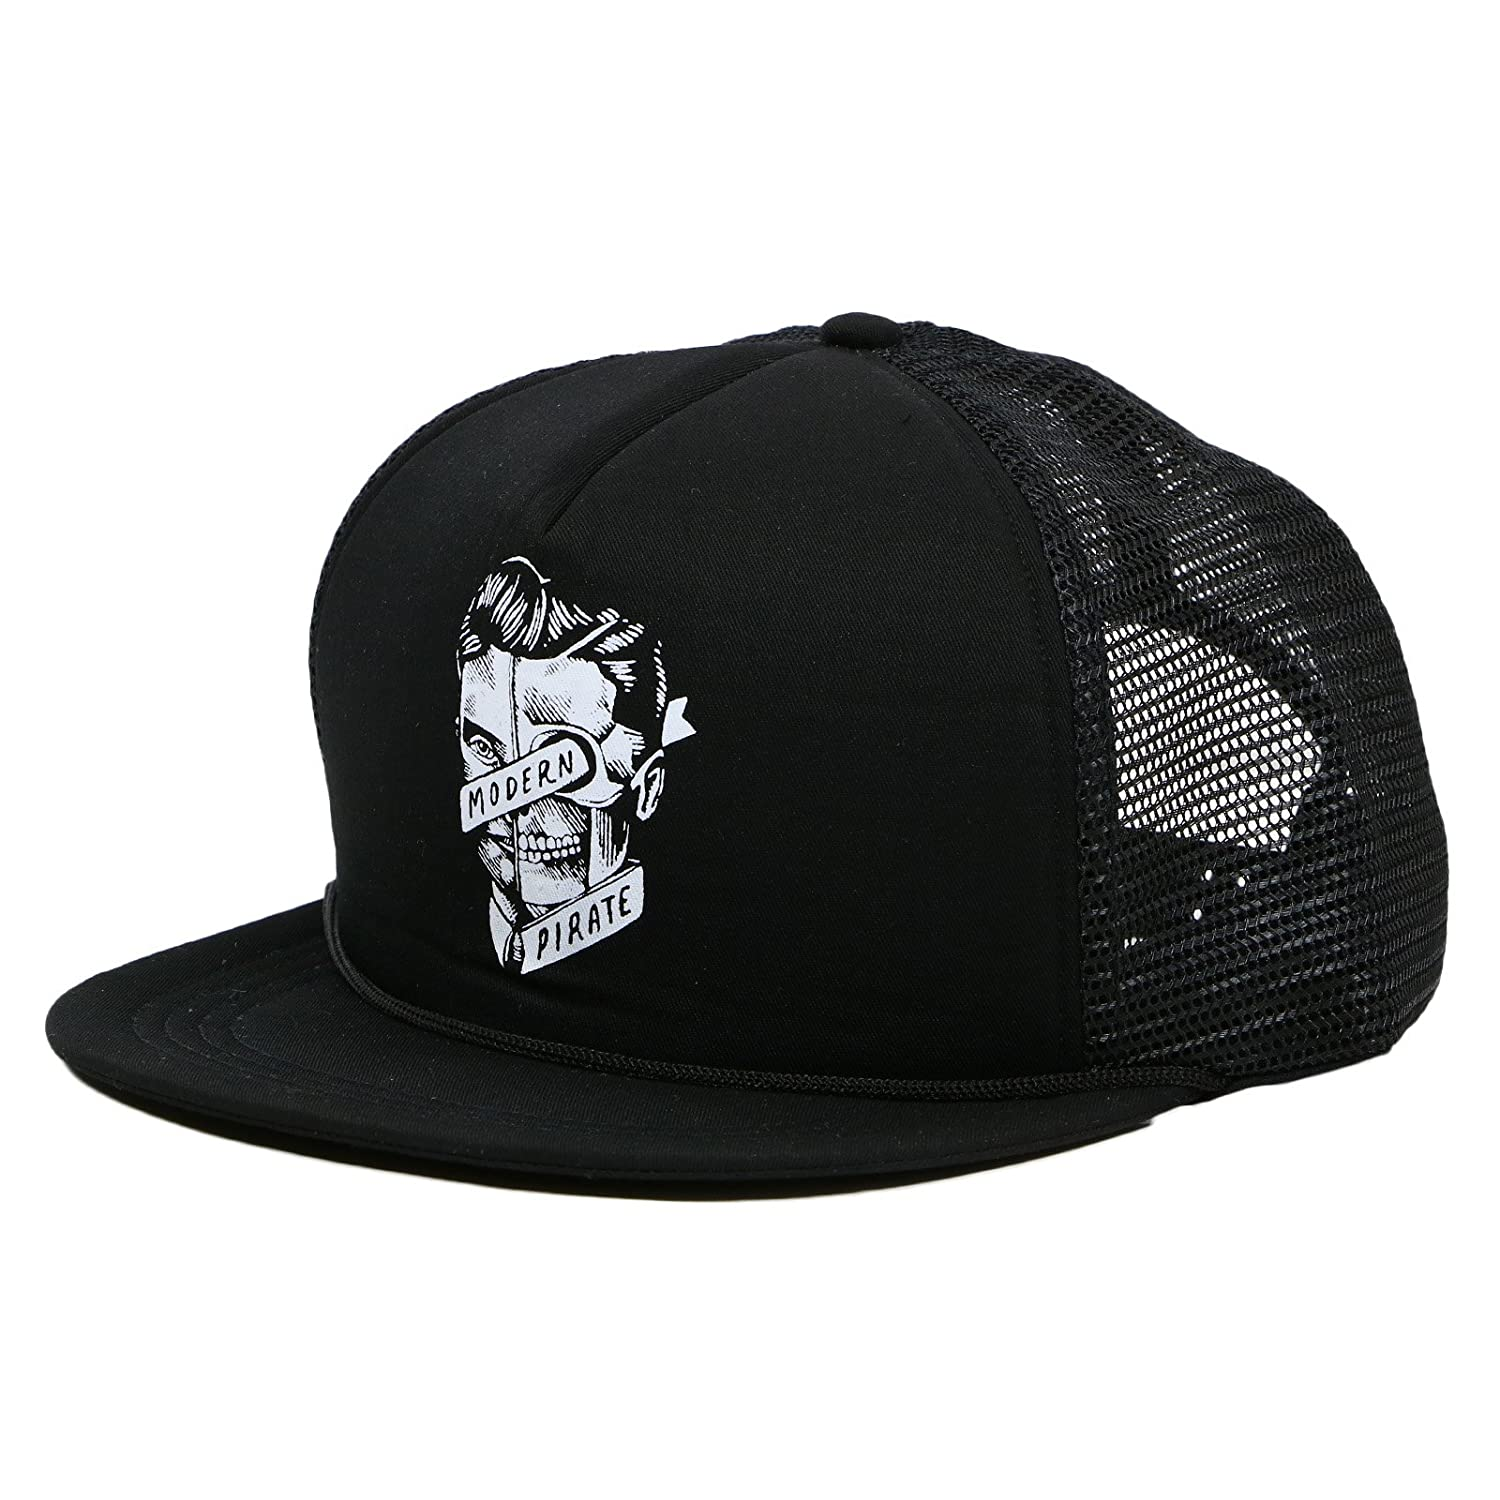 Ingested Slam Kings Embroidered Snapback Hat Black at Amazon Men s Clothing  store  53f71dcef93